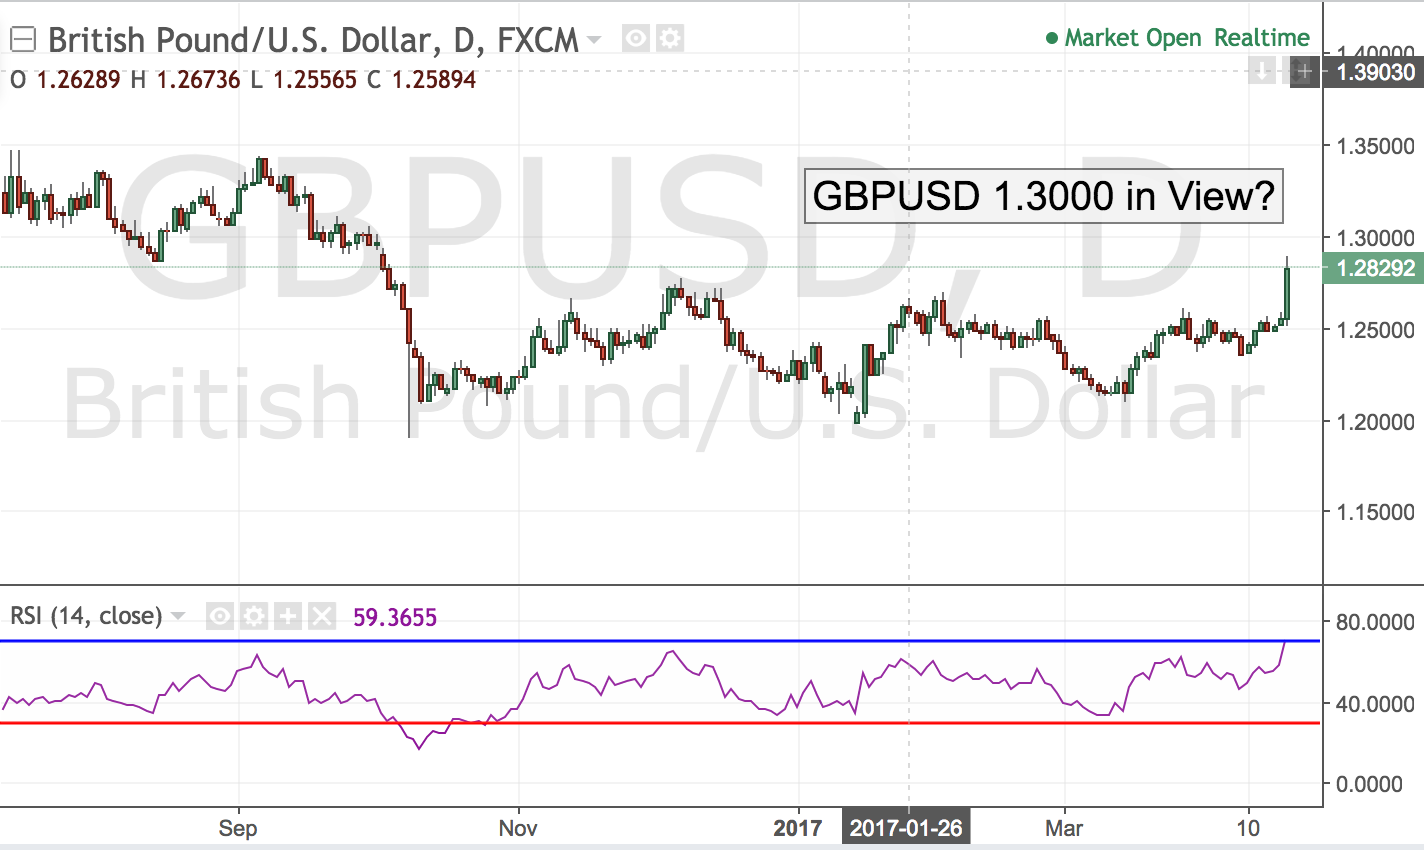 GBPUSD – 1.3000 in View?